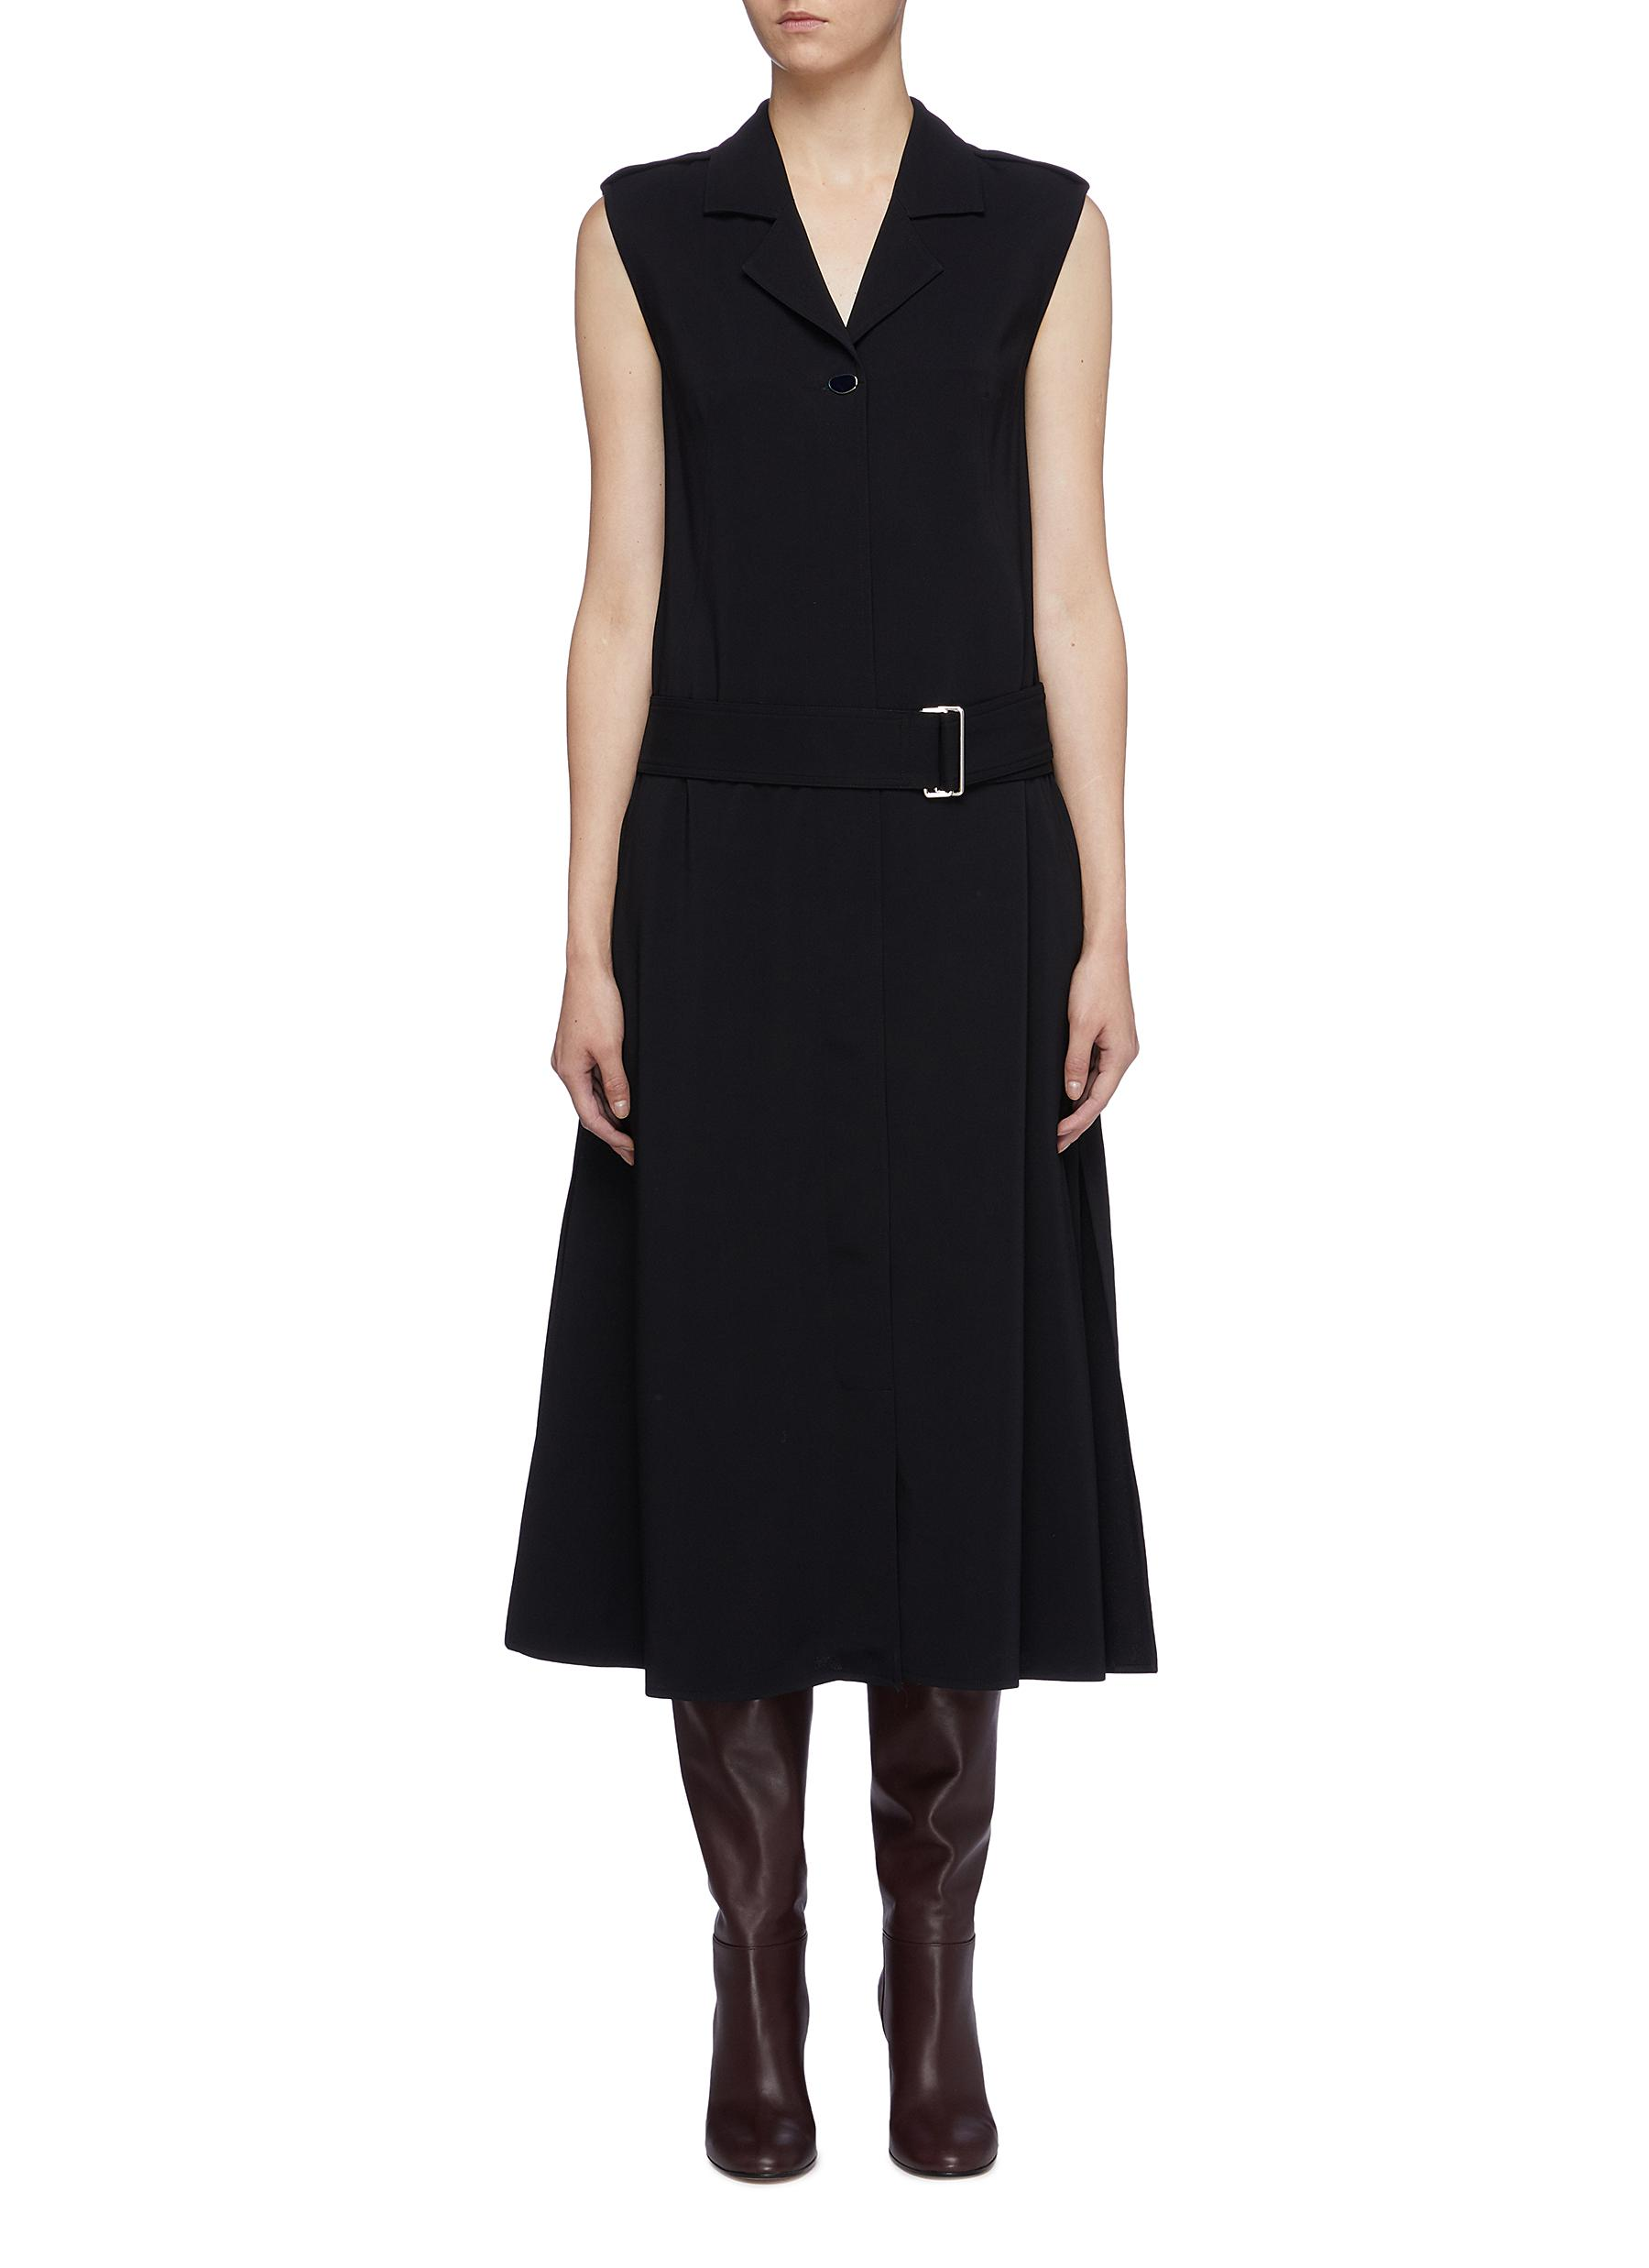 Belted notched lapel sleeveless georgette dress by Victoria Beckham